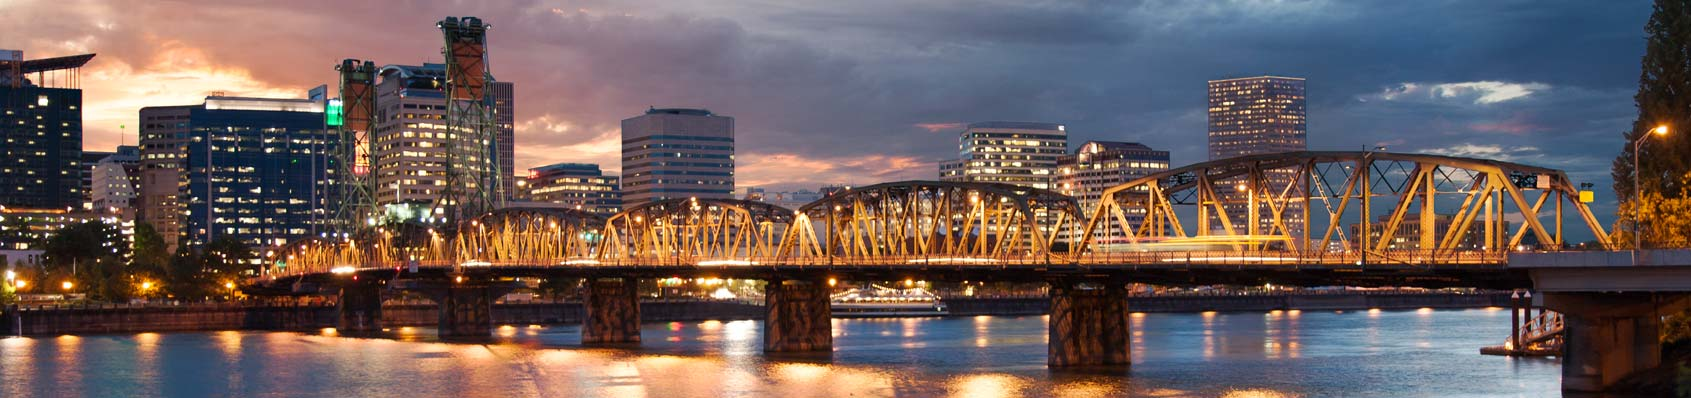 Hawthorne_Bridge_Web_3